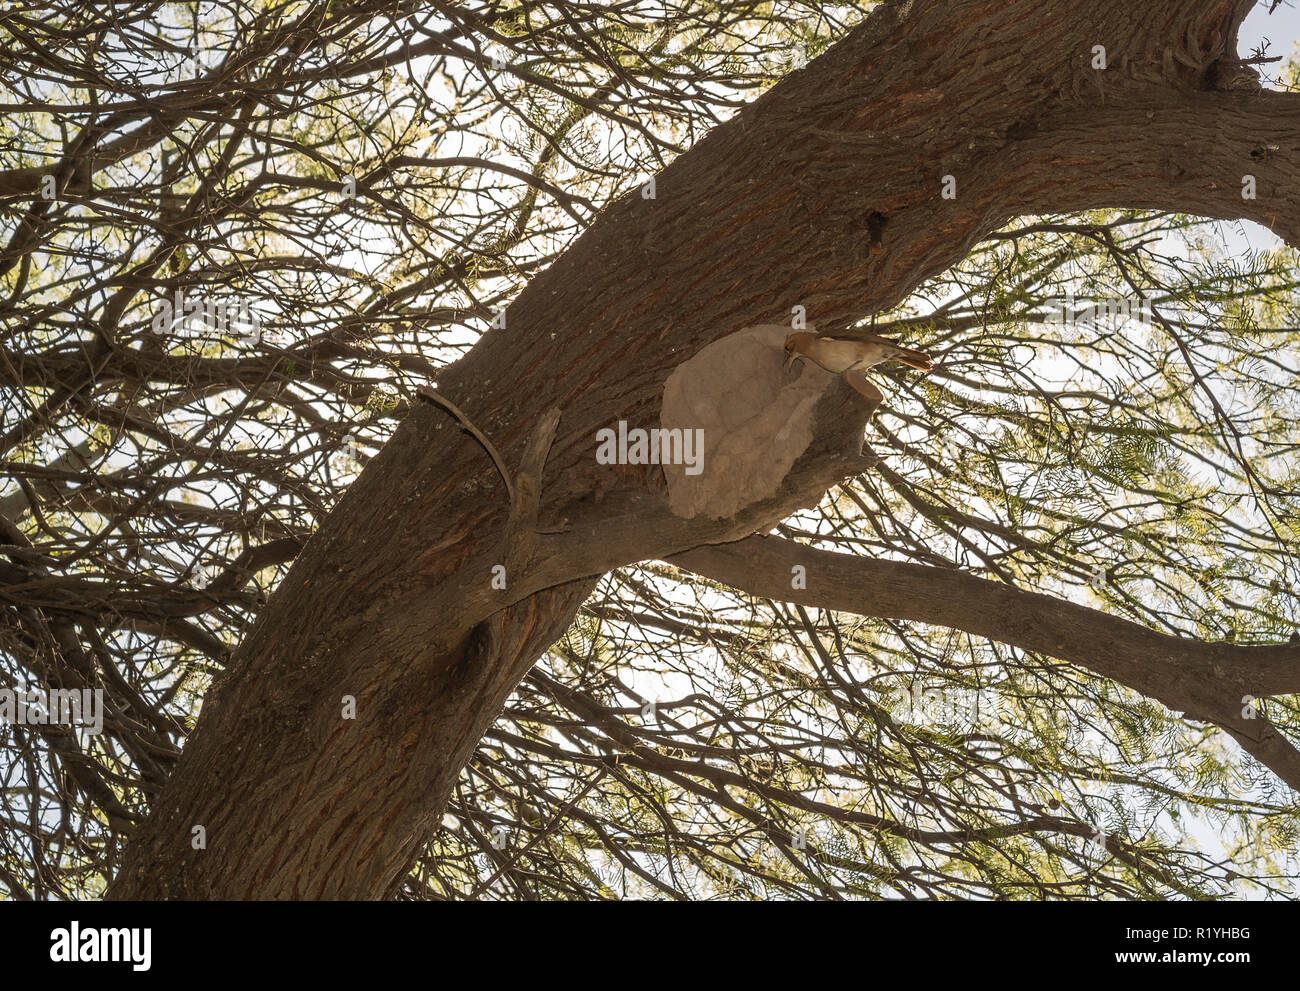 Rufous hornero at its nest - Stock Image